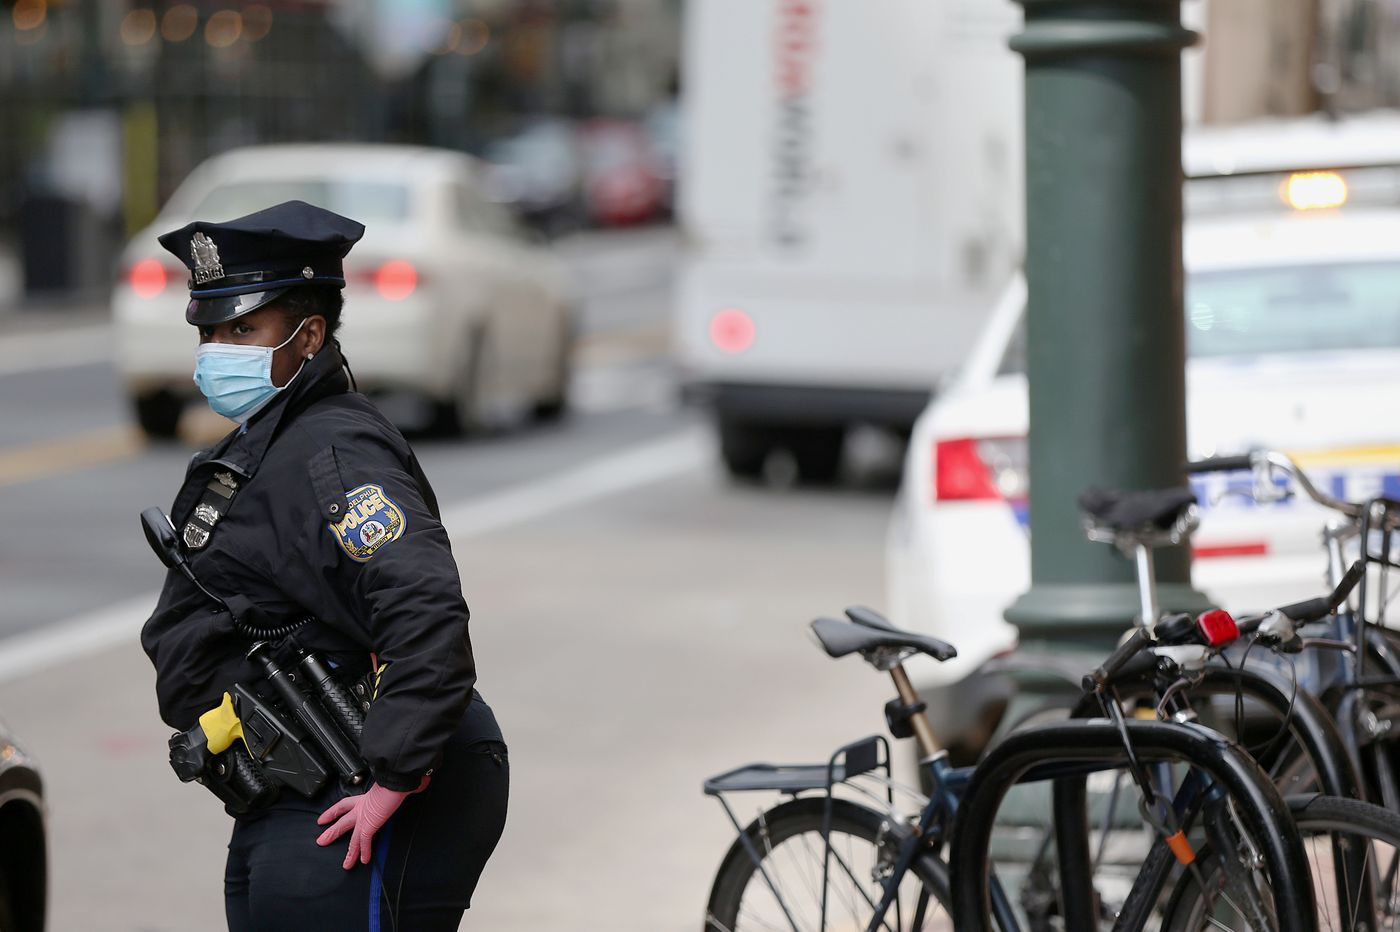 At least 800 Philadelphia police officers may have been exposed to coronavirus, sparking fear and uncertainty